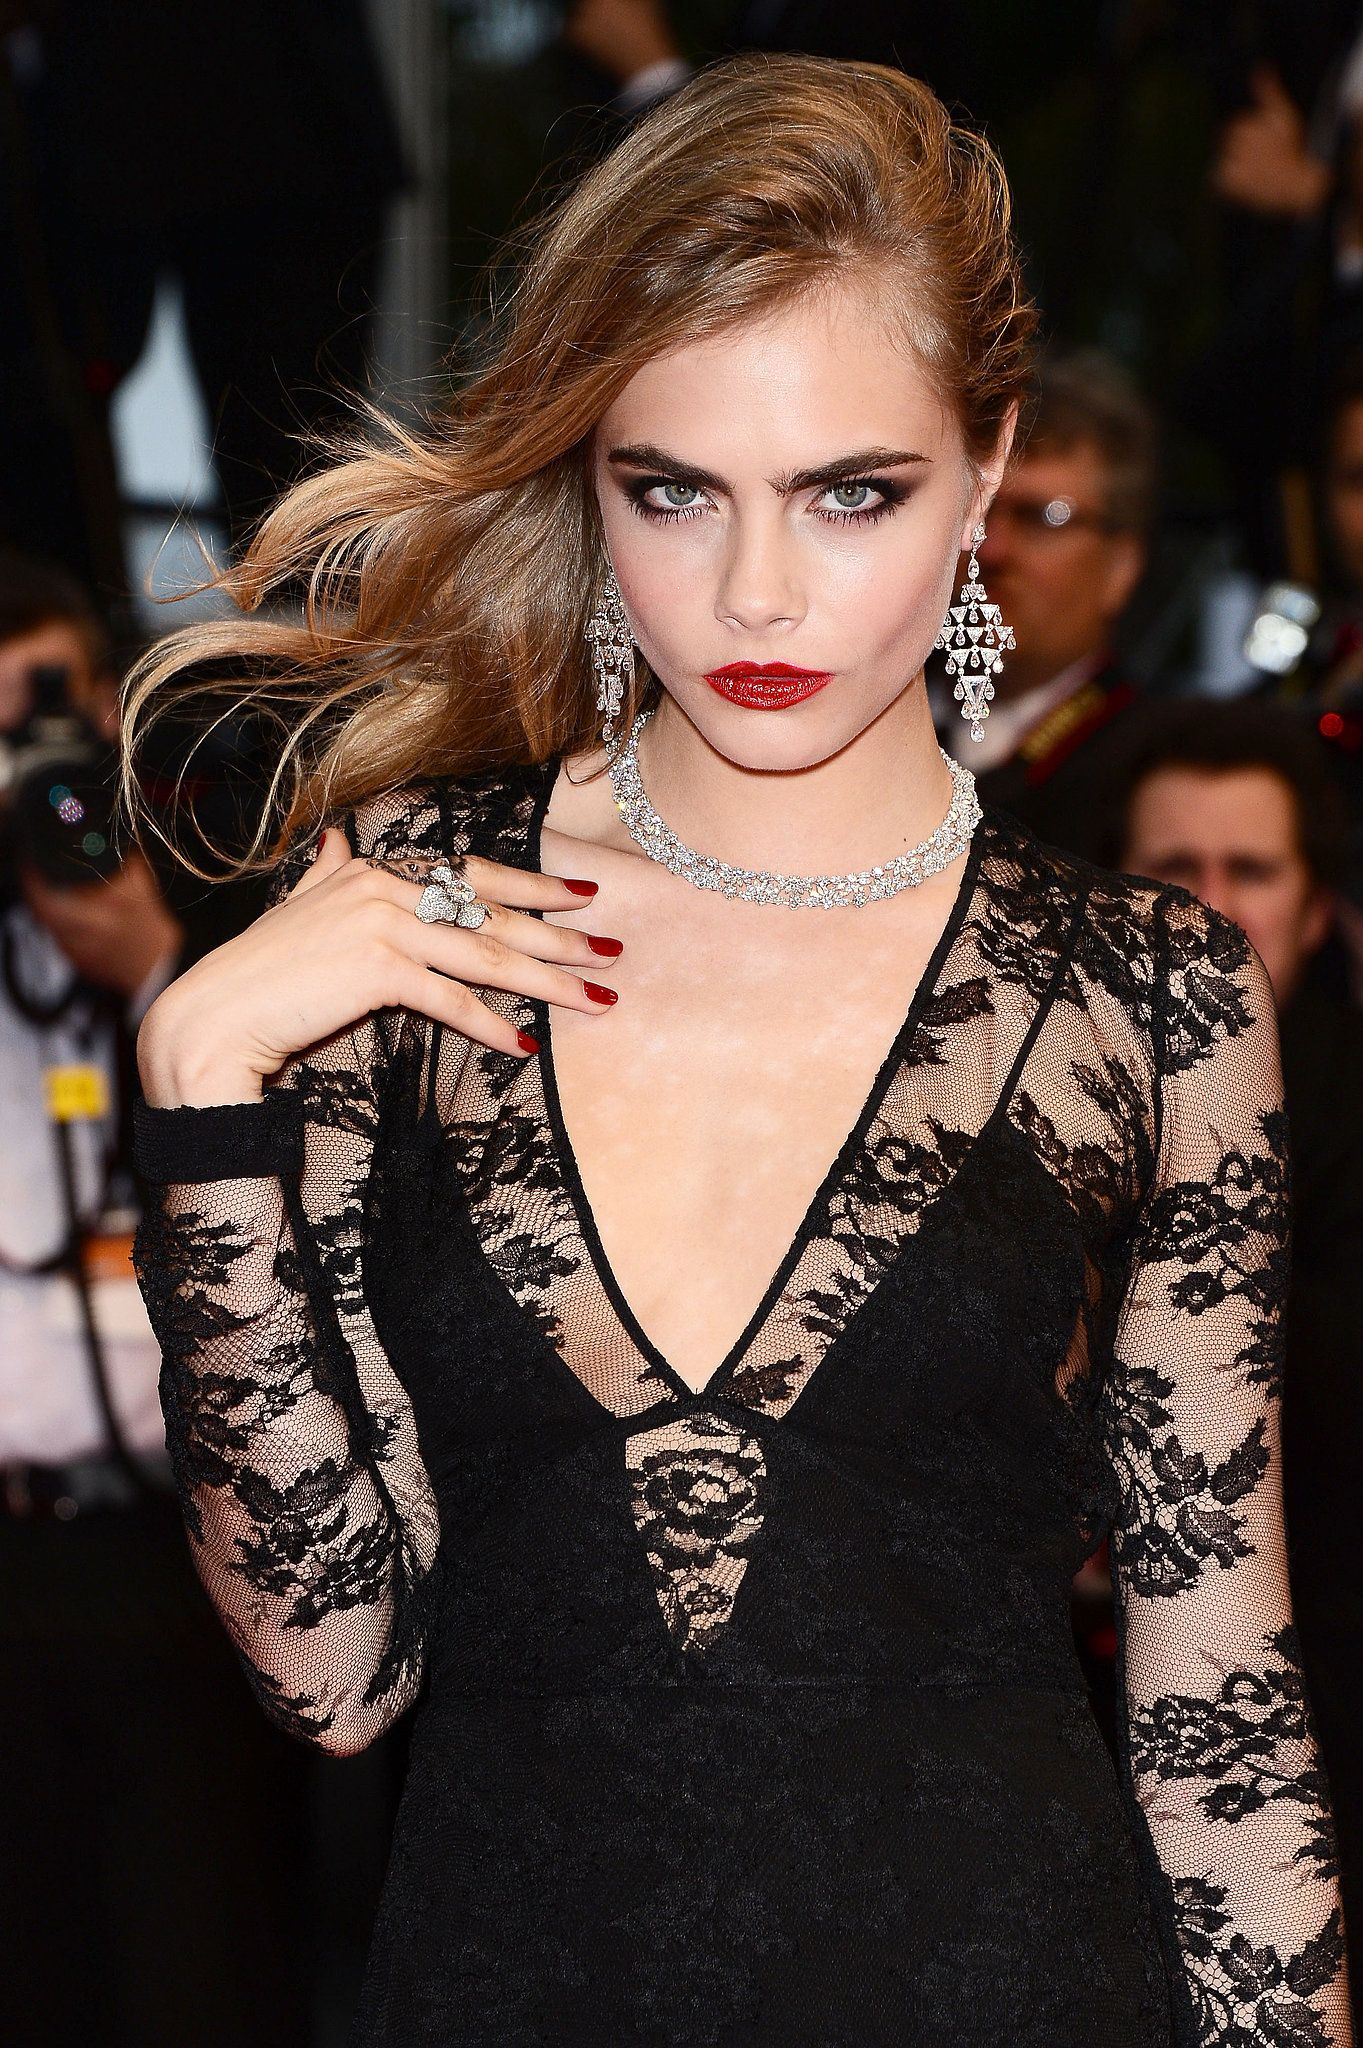 Black dress with red lipstick - Cara Delevingne Matched Her Deep Red Lipstick With A Brick Red Nail Polish For